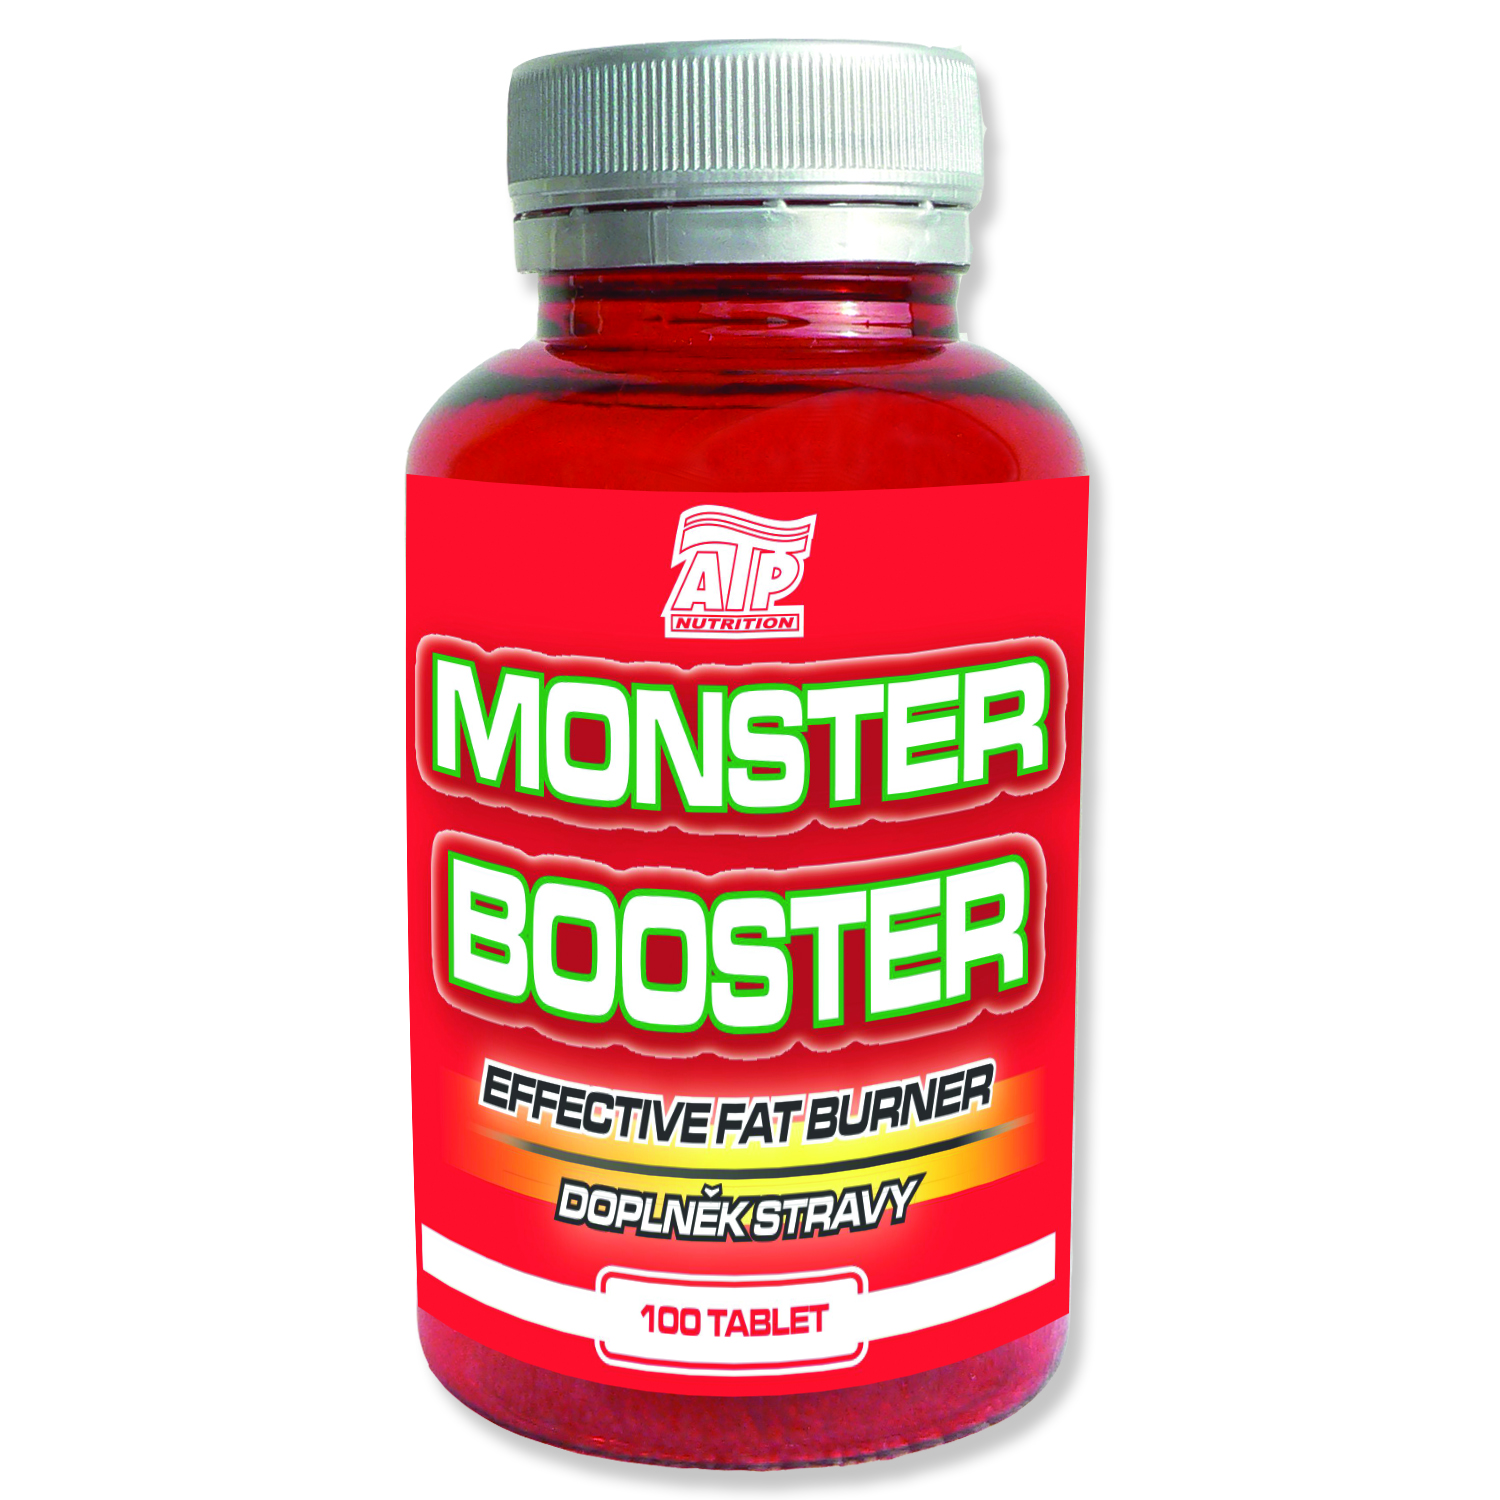 MONSTERBOOSTER